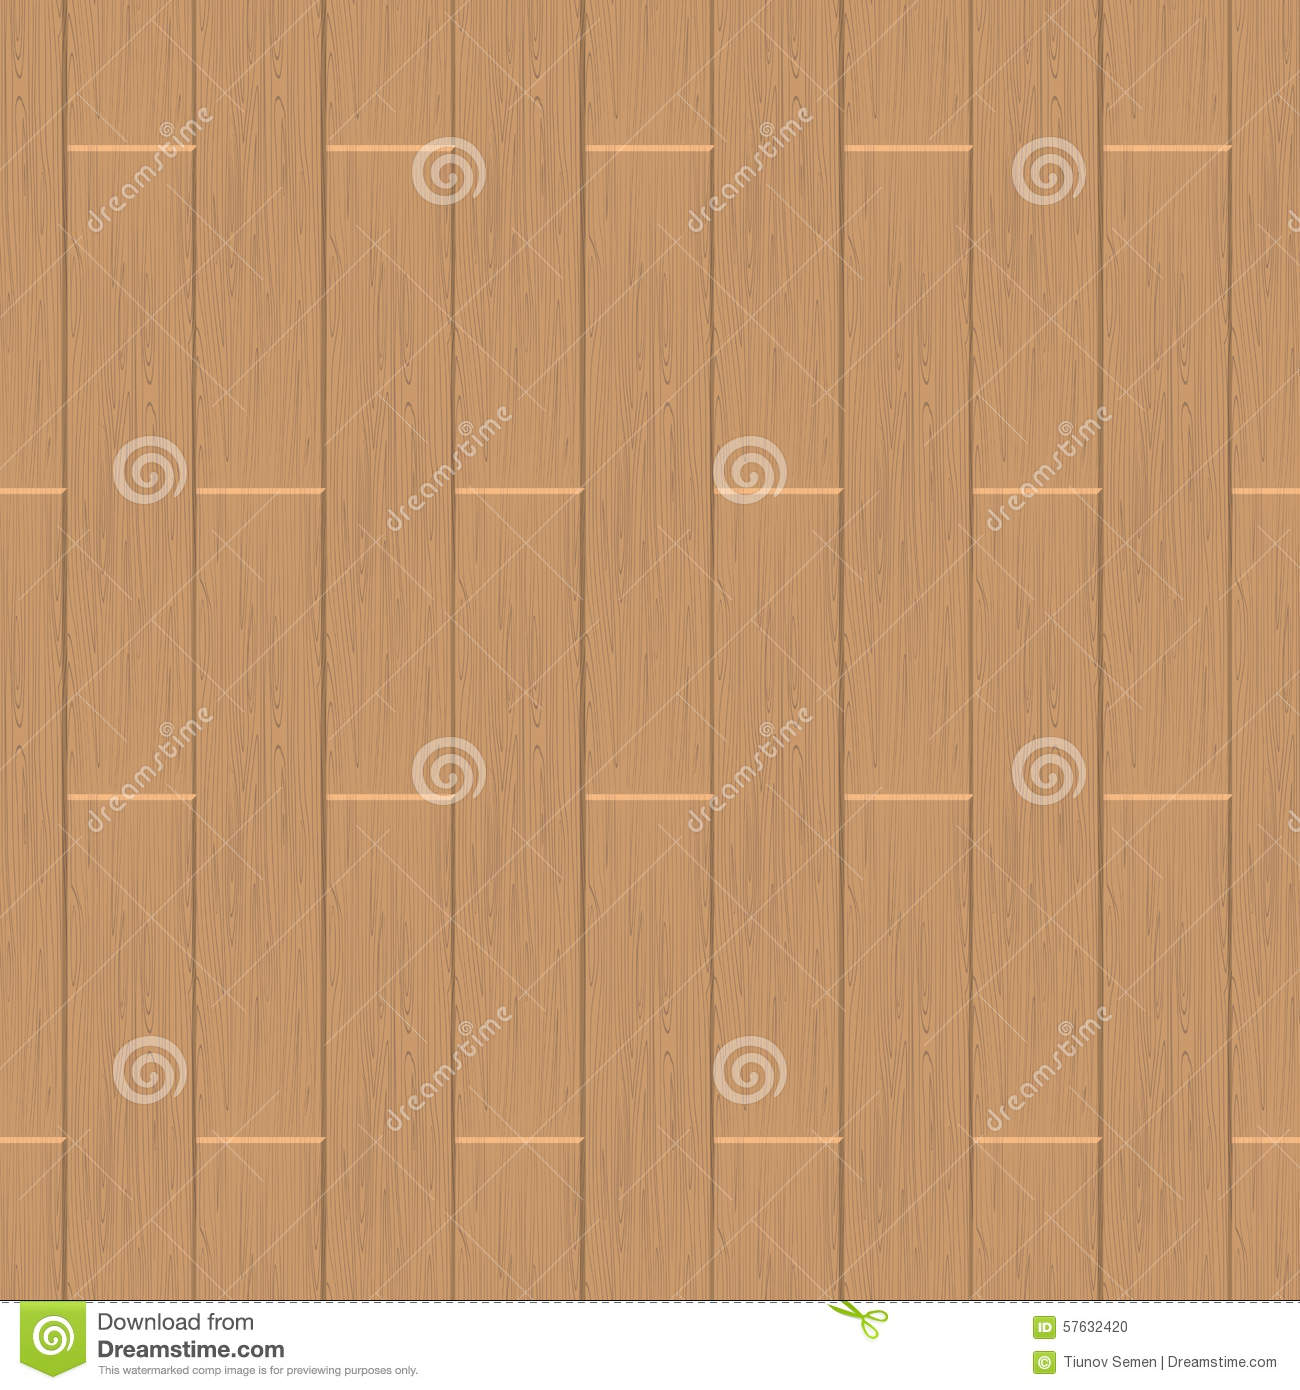 Laminate seamless pattern texture of wood flooring